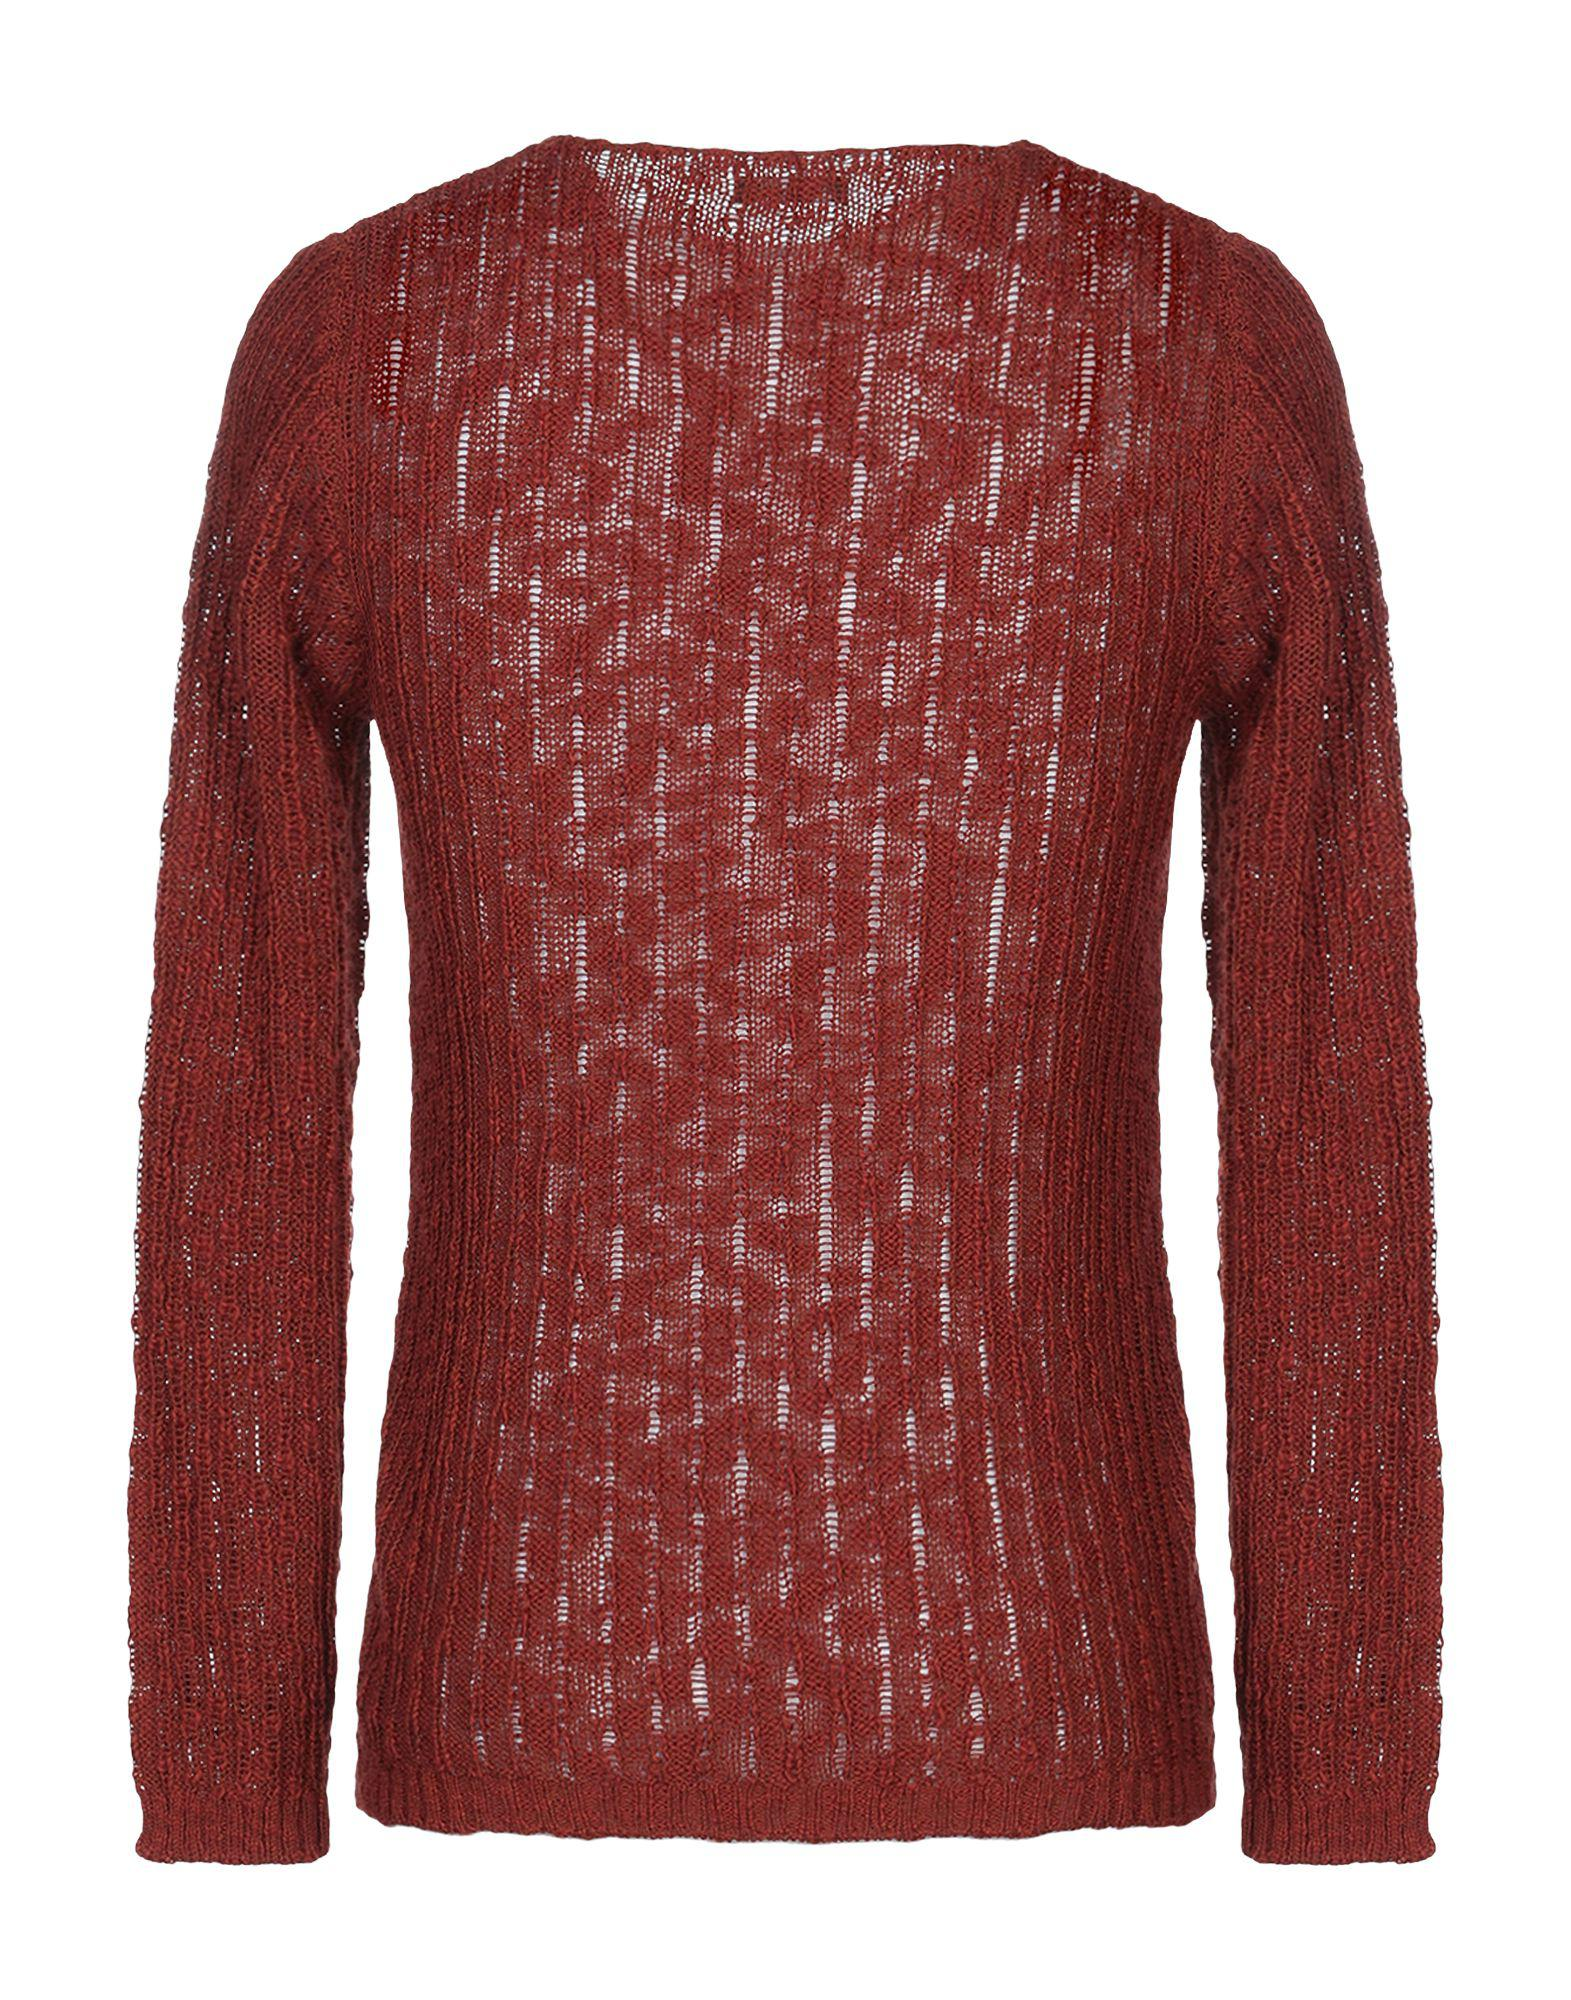 Lyst - Officina 36 Sweater in Red for Men 89eae882a